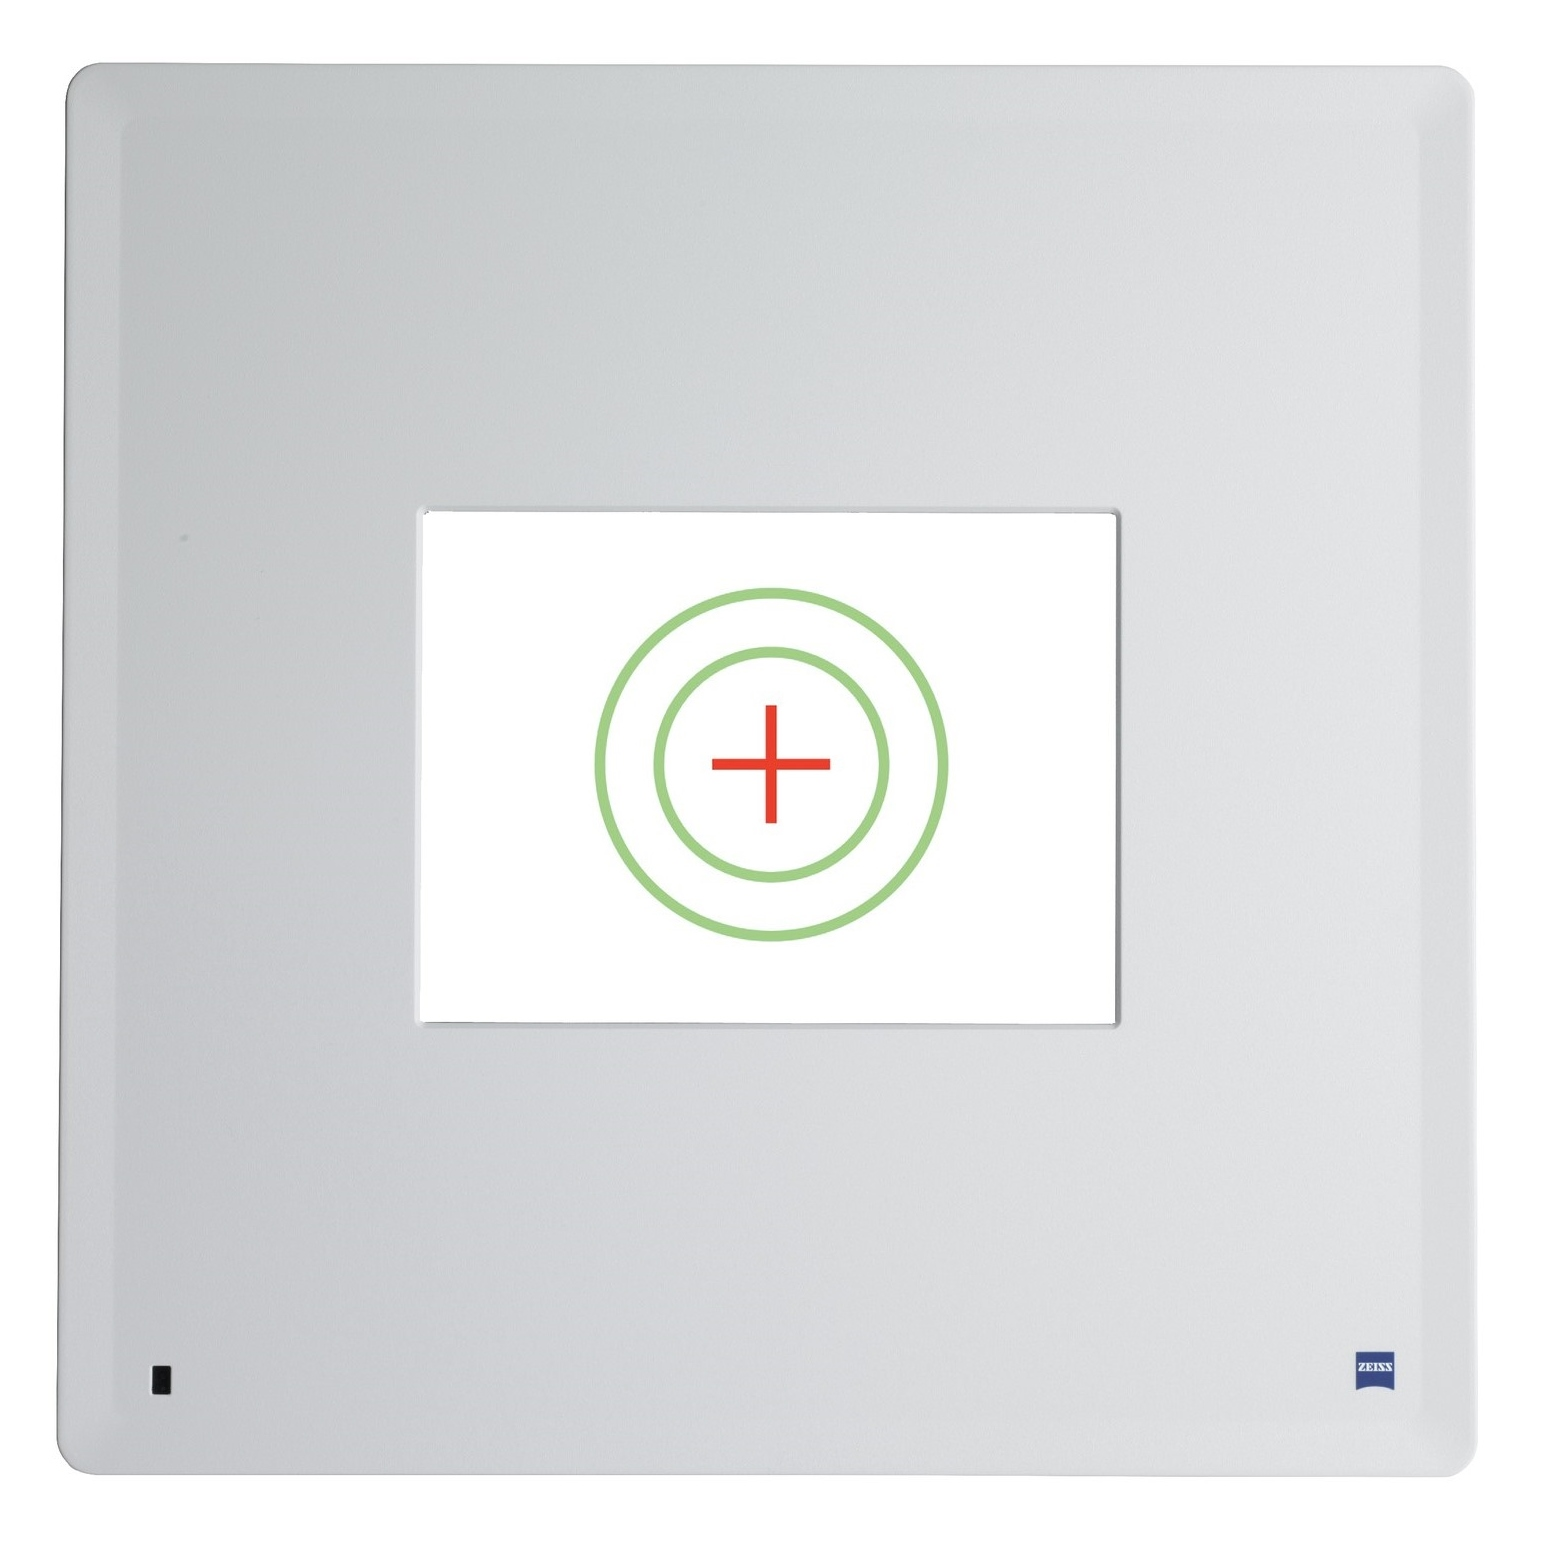 ZEISS VISUSCREEN 100 - Acuity Chart product photo